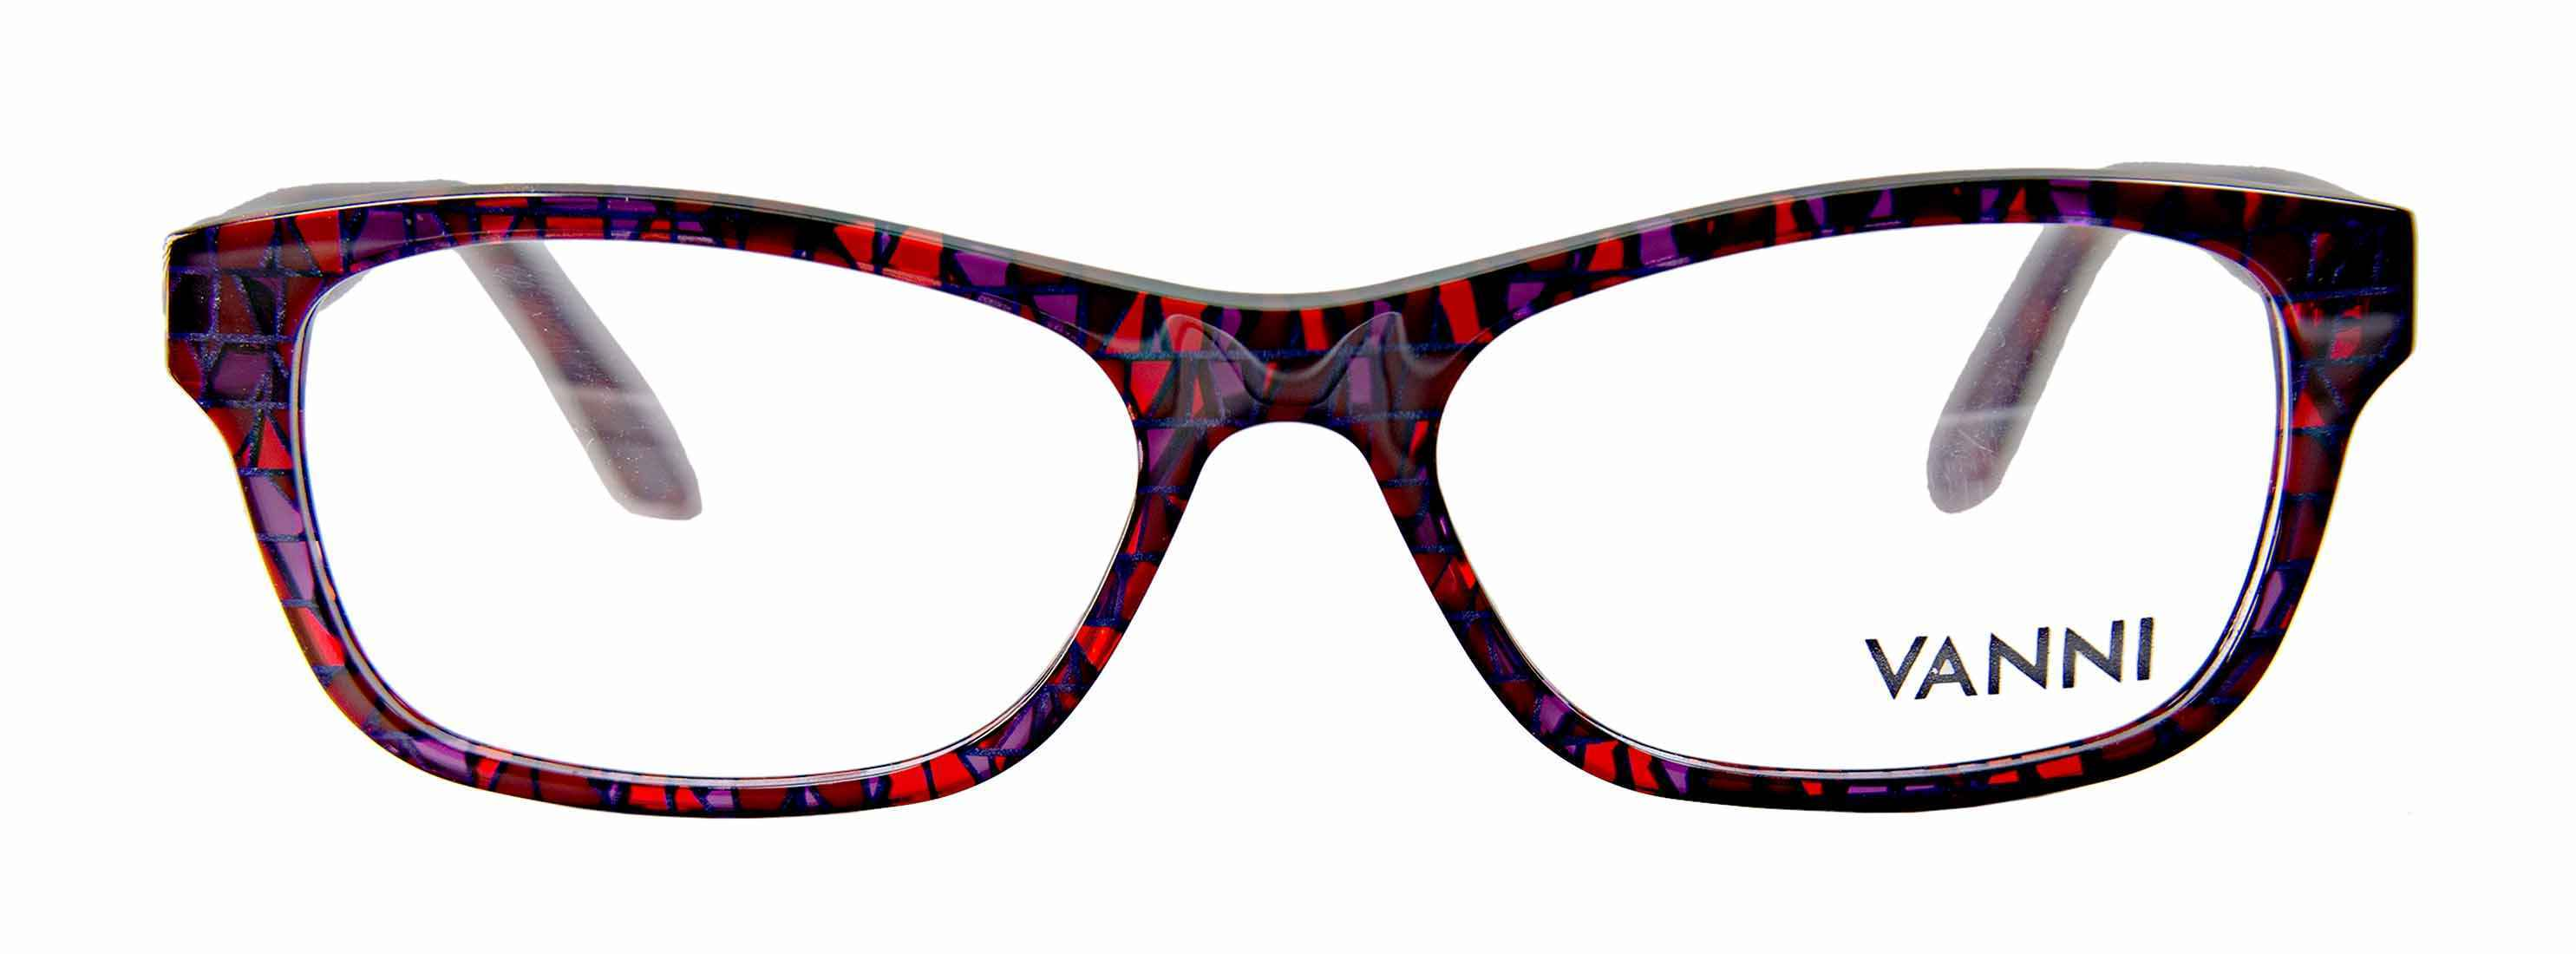 Vanni spectacles 1975 A80 2970x1100 1